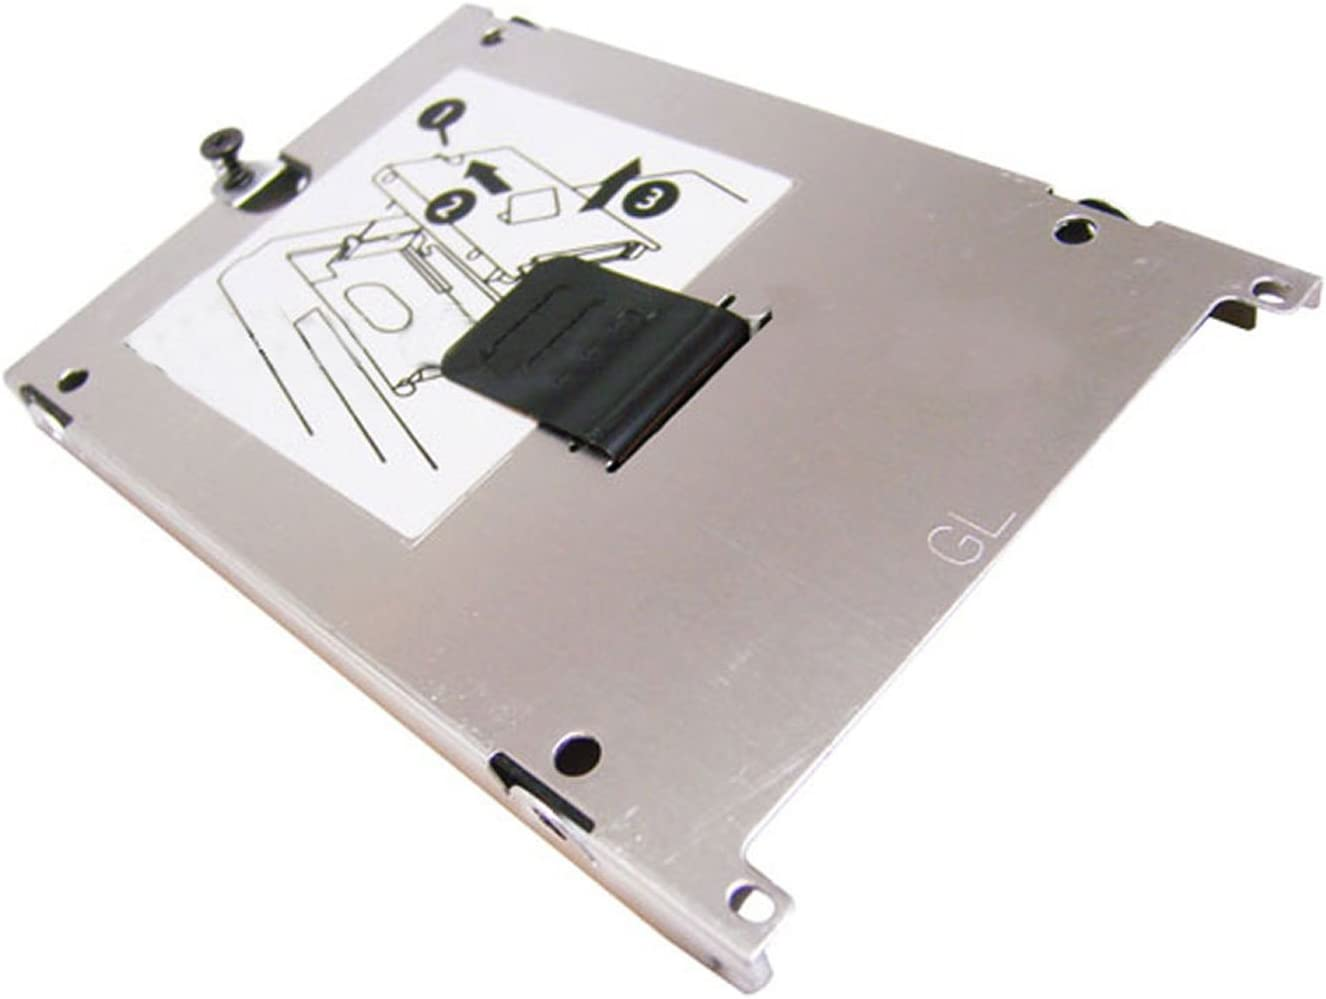 HP 8440w Carrier Inventec GL HDD Cover Bracket Assembly 1750B0035001